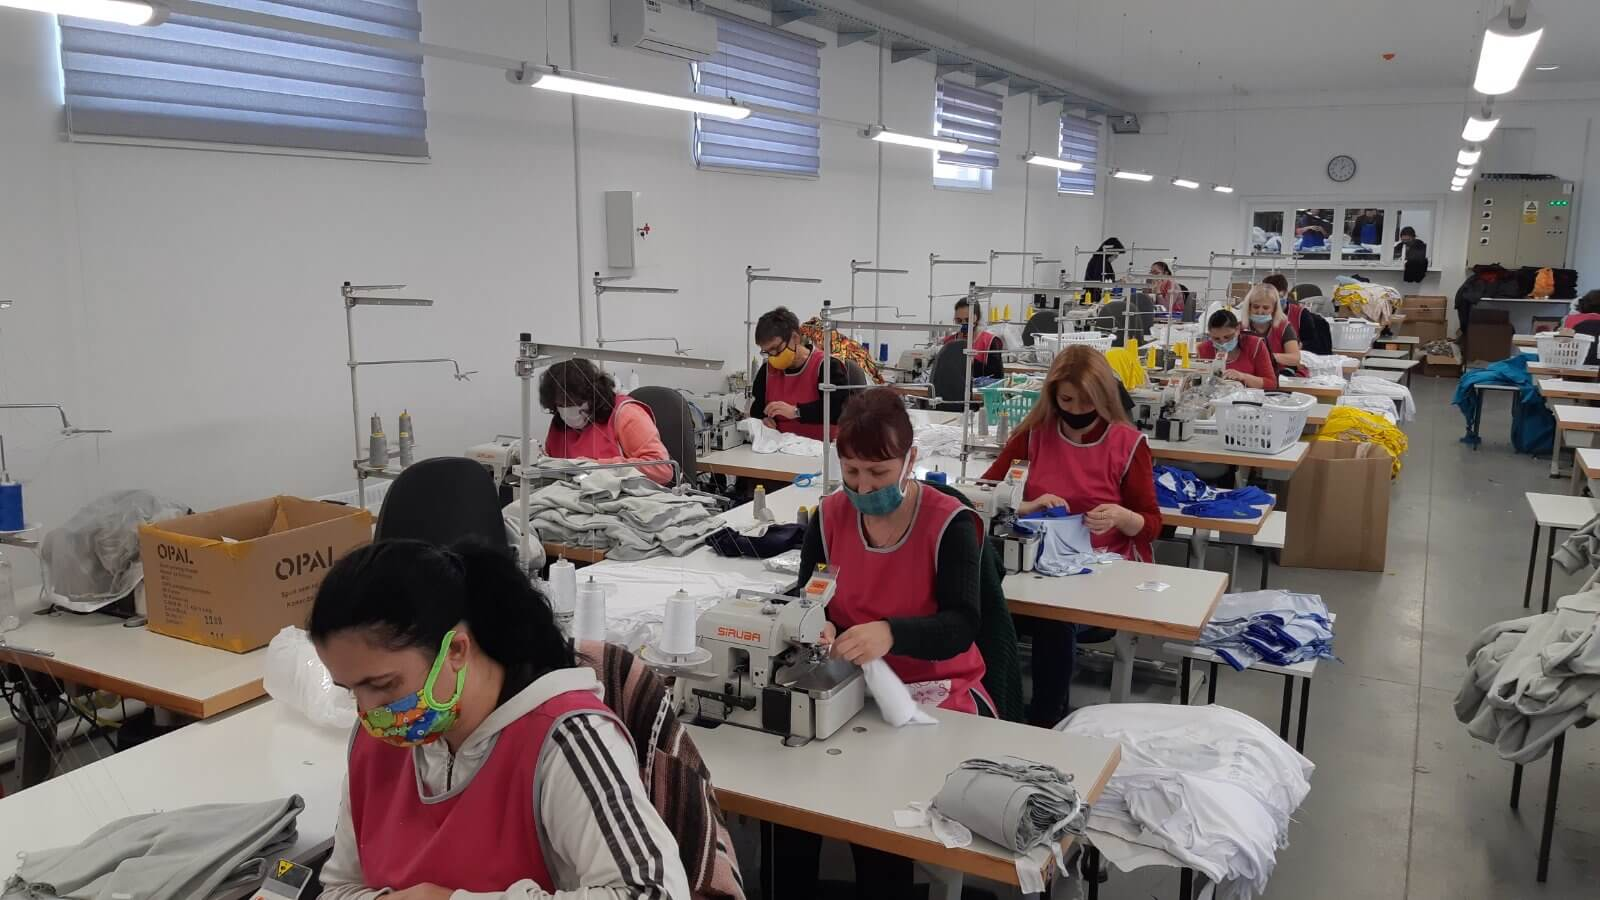 Sewing technicians working in a European clothing factory.